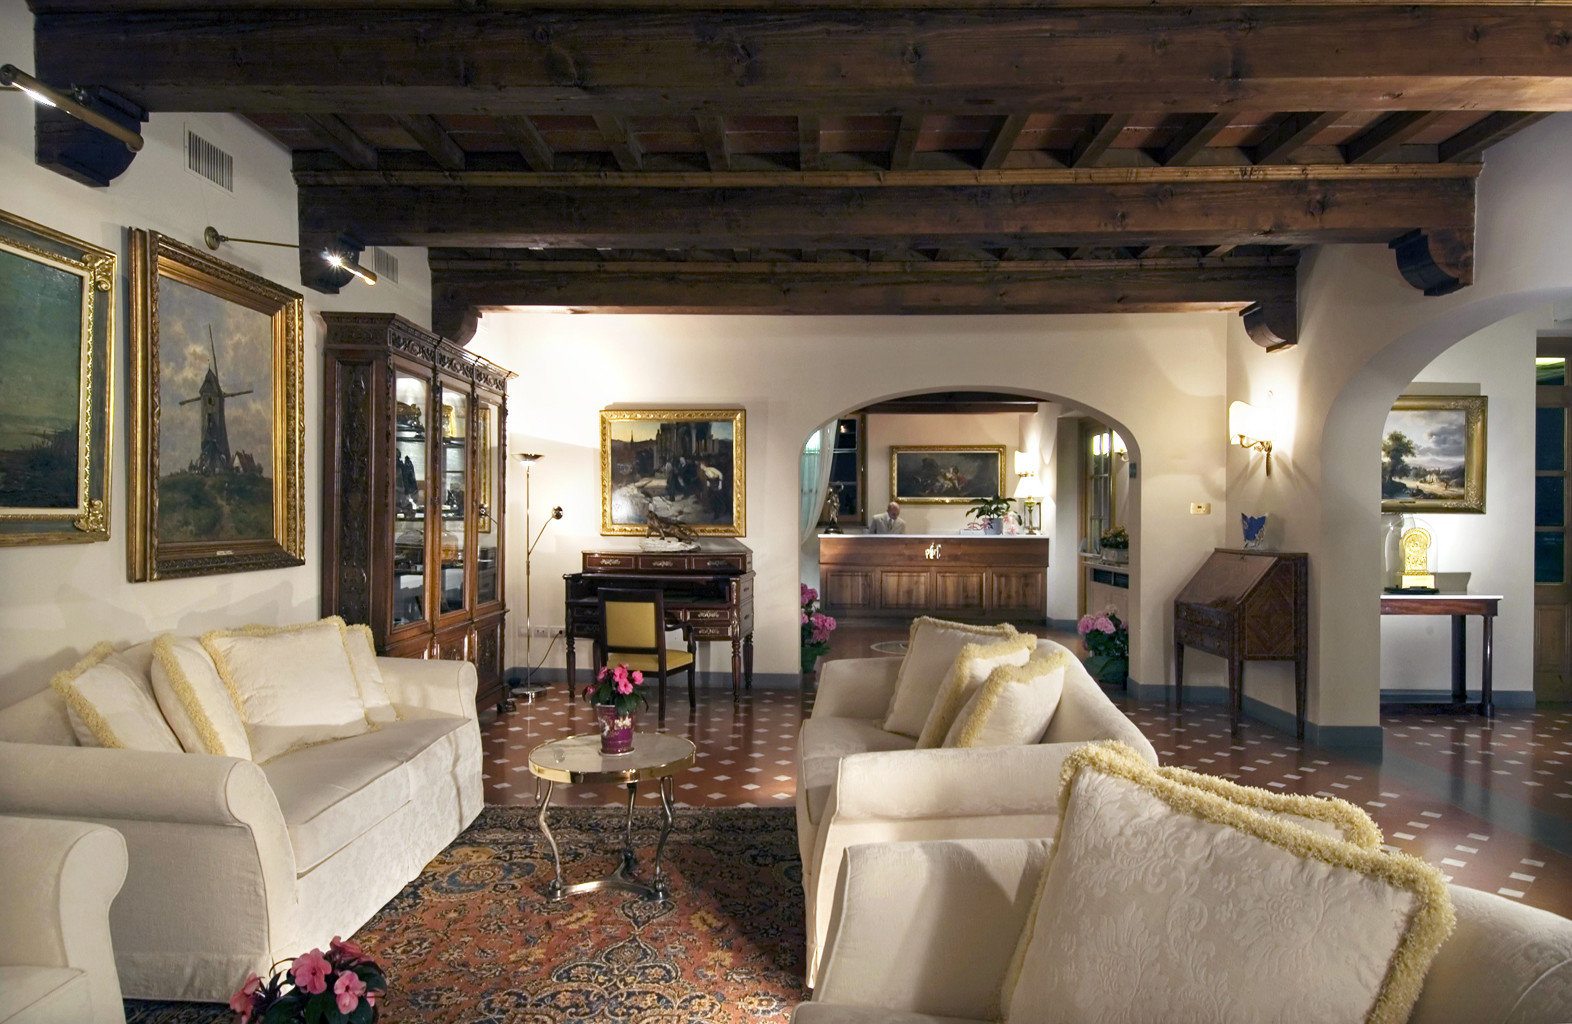 Bedroom Country Rustic sofa living room property home house Villa mansion cottage recreation room Suite farmhouse